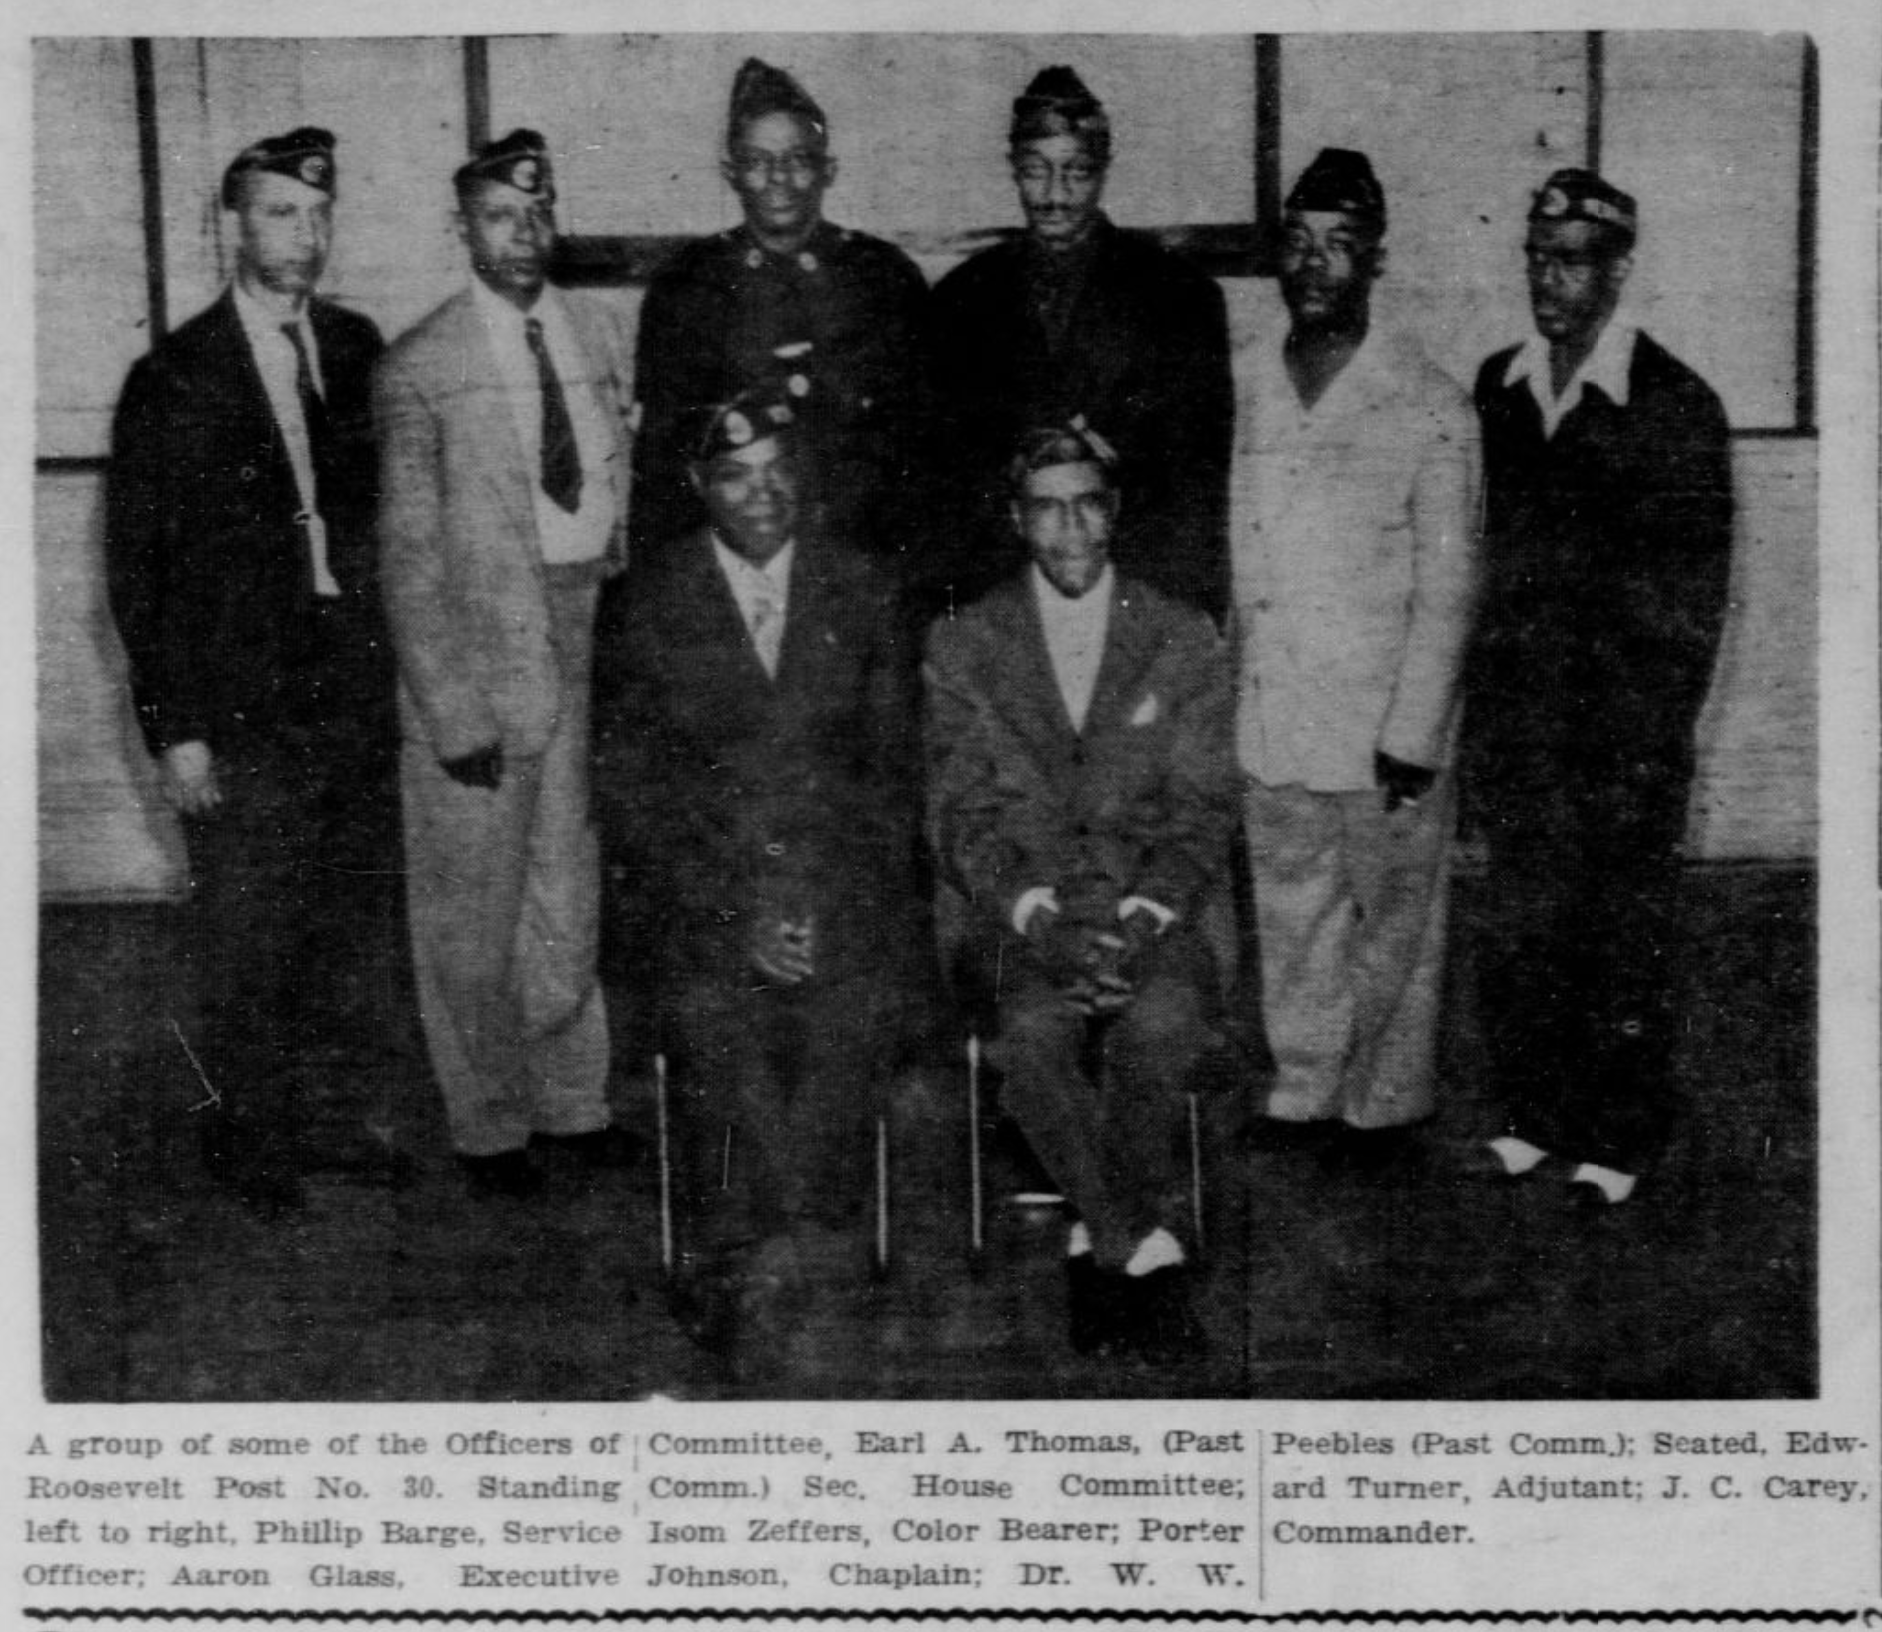 Leaders of North Omaha American Legion Roosevelt Post No. 30 in 1943